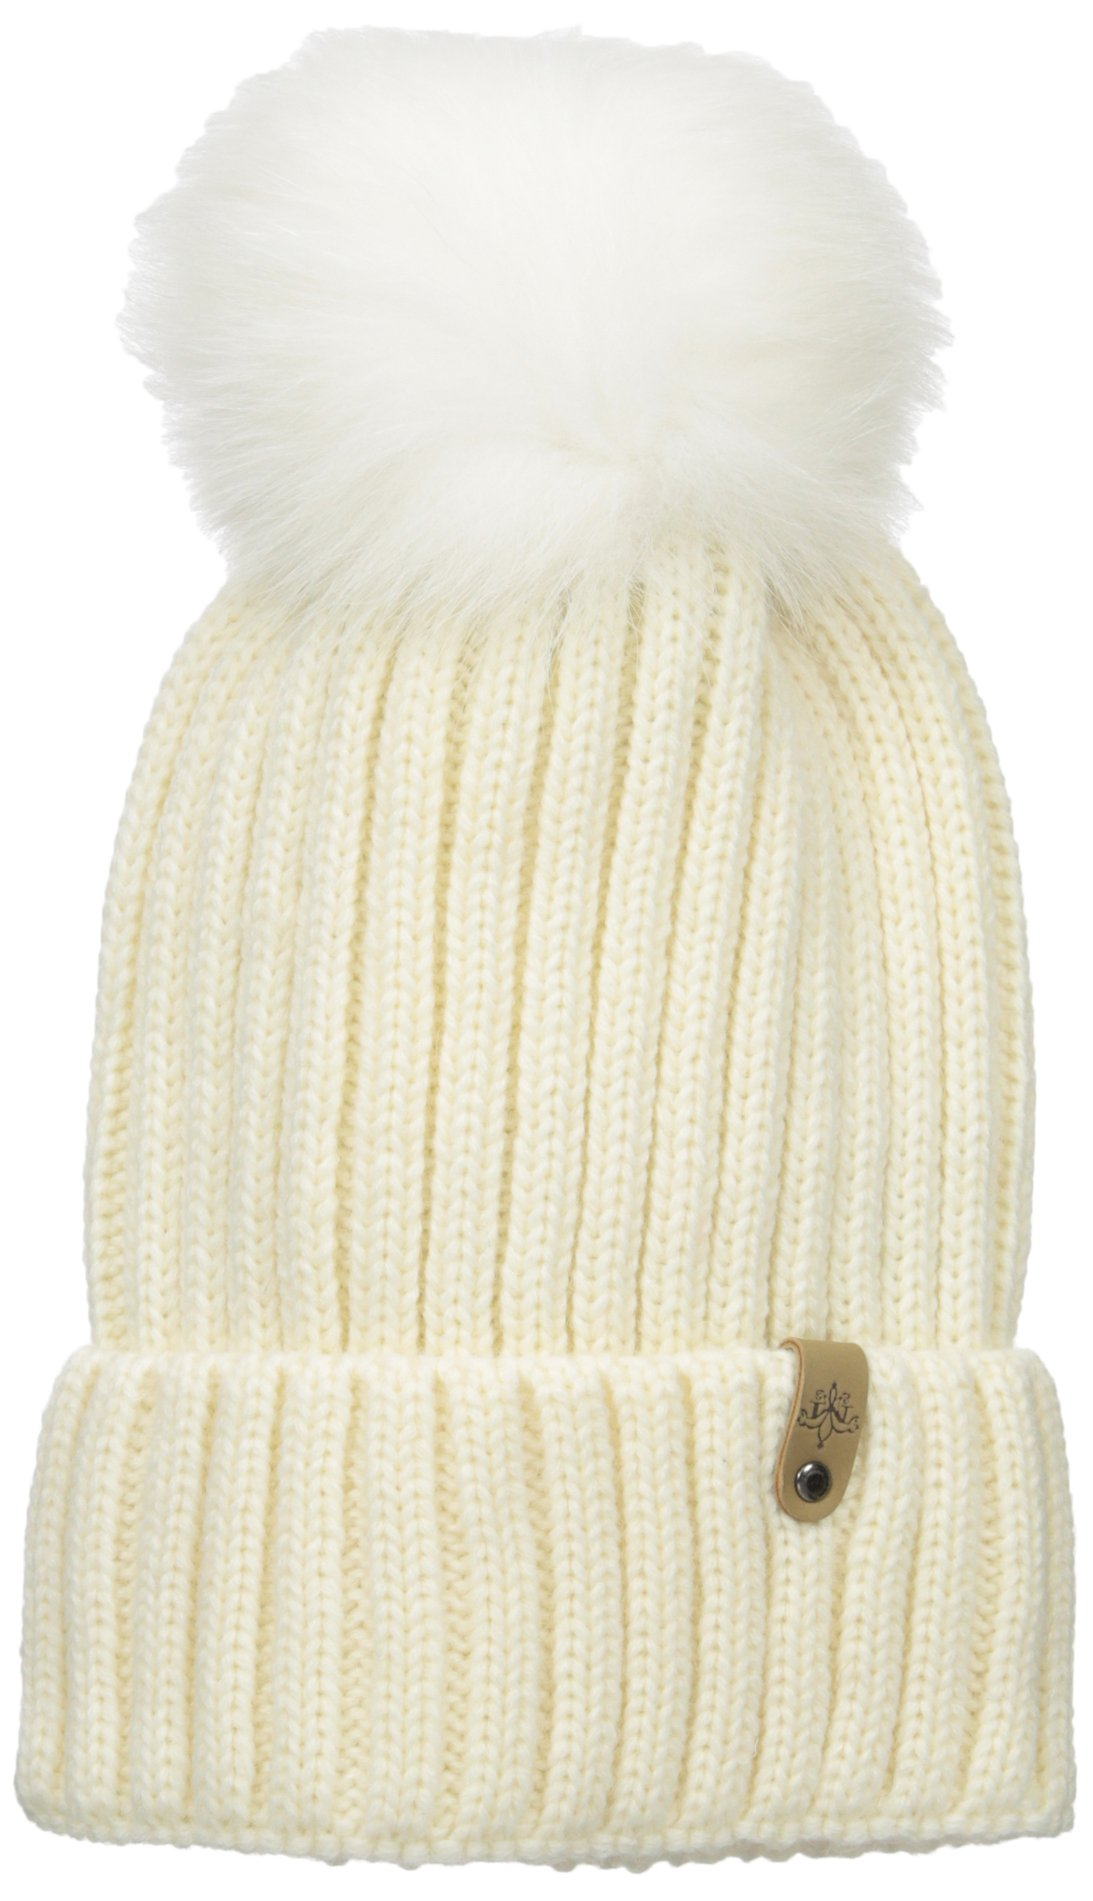 Mackage Women's Mac Wool Acrylic Hat with Fur Pom Pom, Off-White, One Size